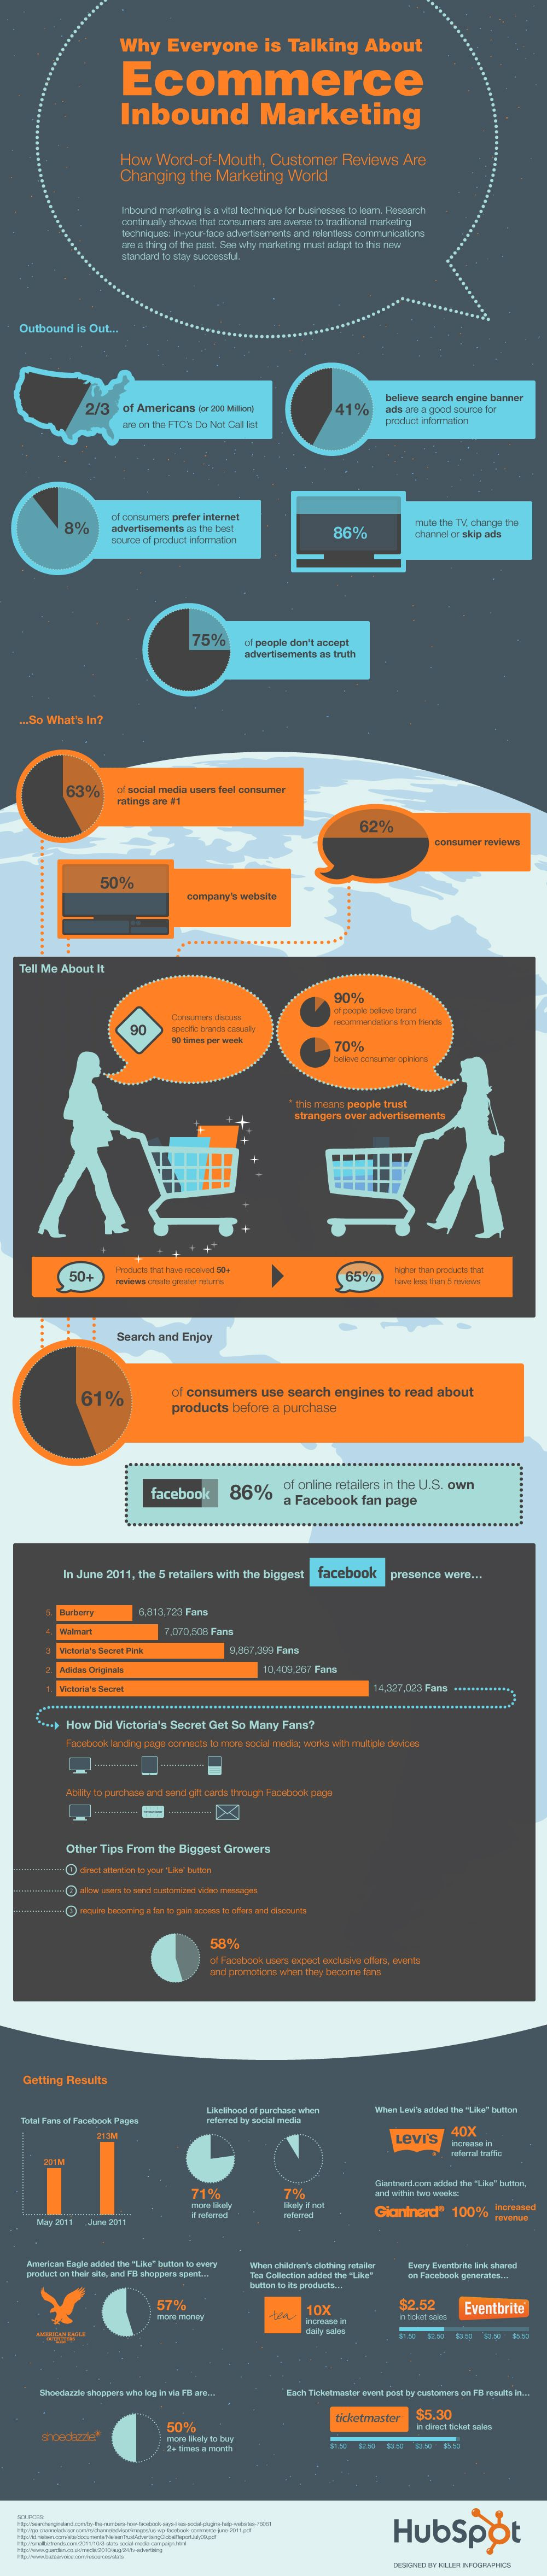 [Infographic] 71% More Likely to Purchase Based on Social Media Referrals